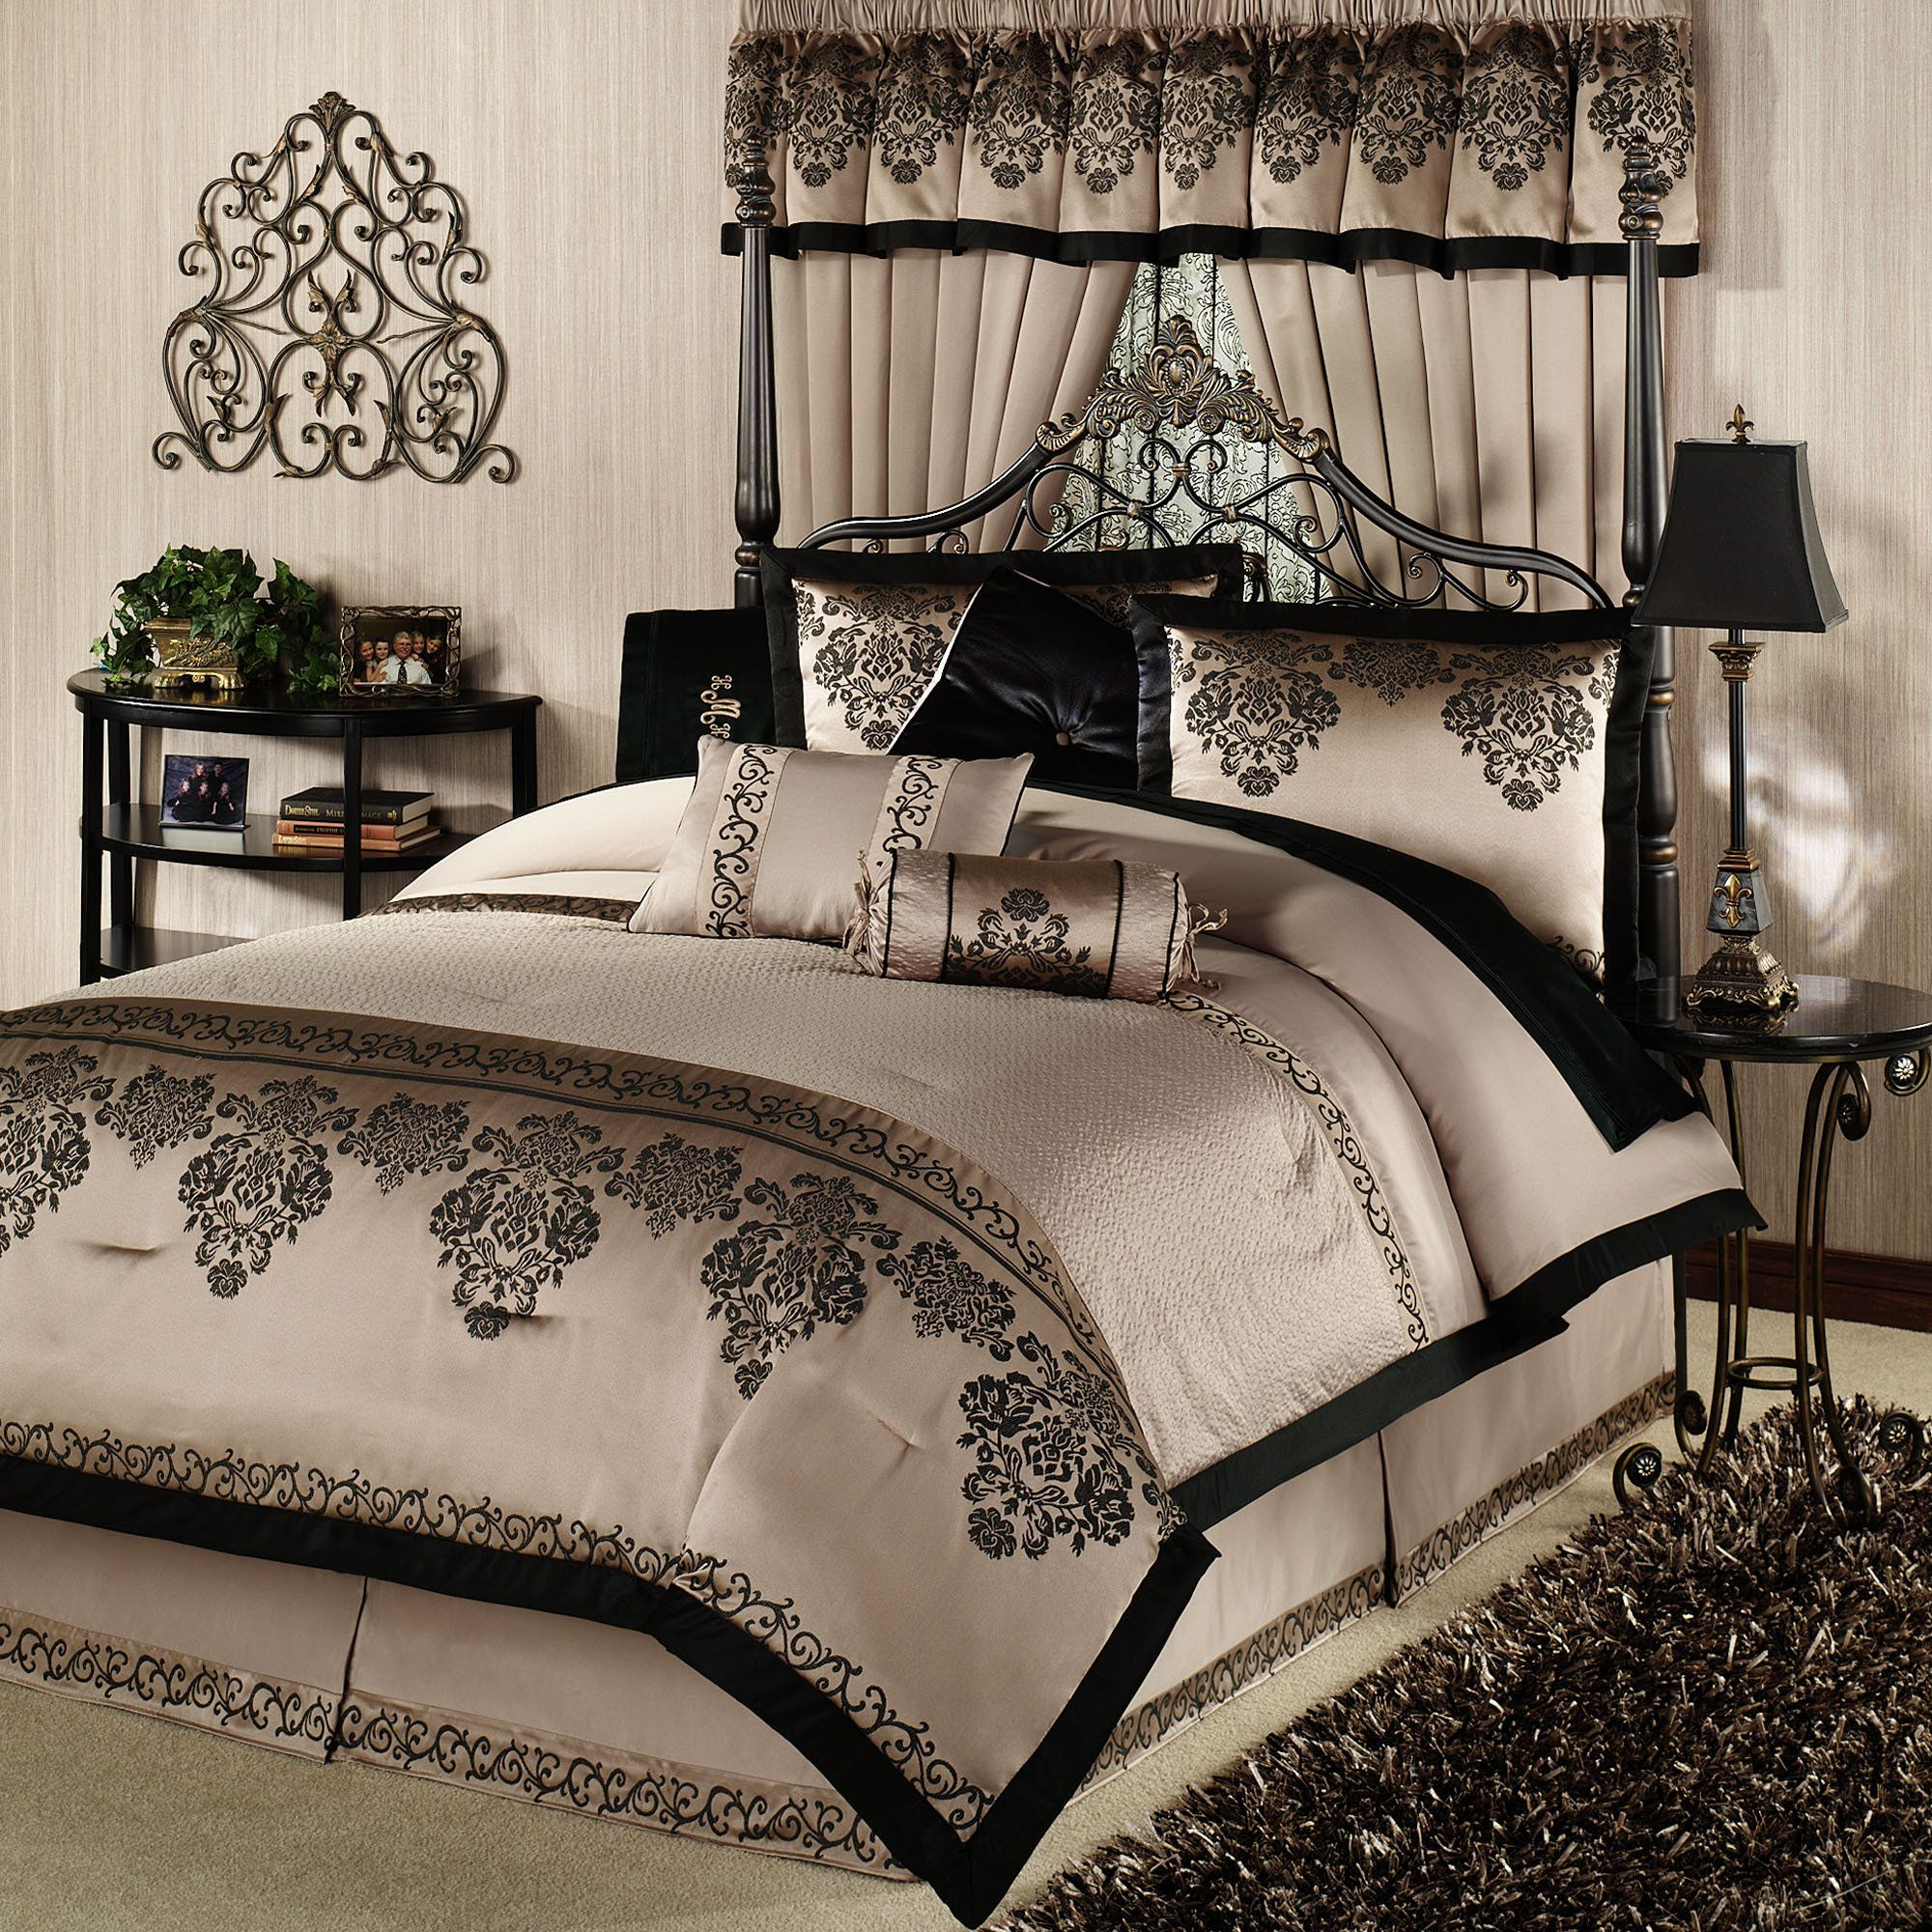 King Size Bed Comforters Sets Overview Details Sizes Swatch Reviews The Elegant Camelot Ii Bedding